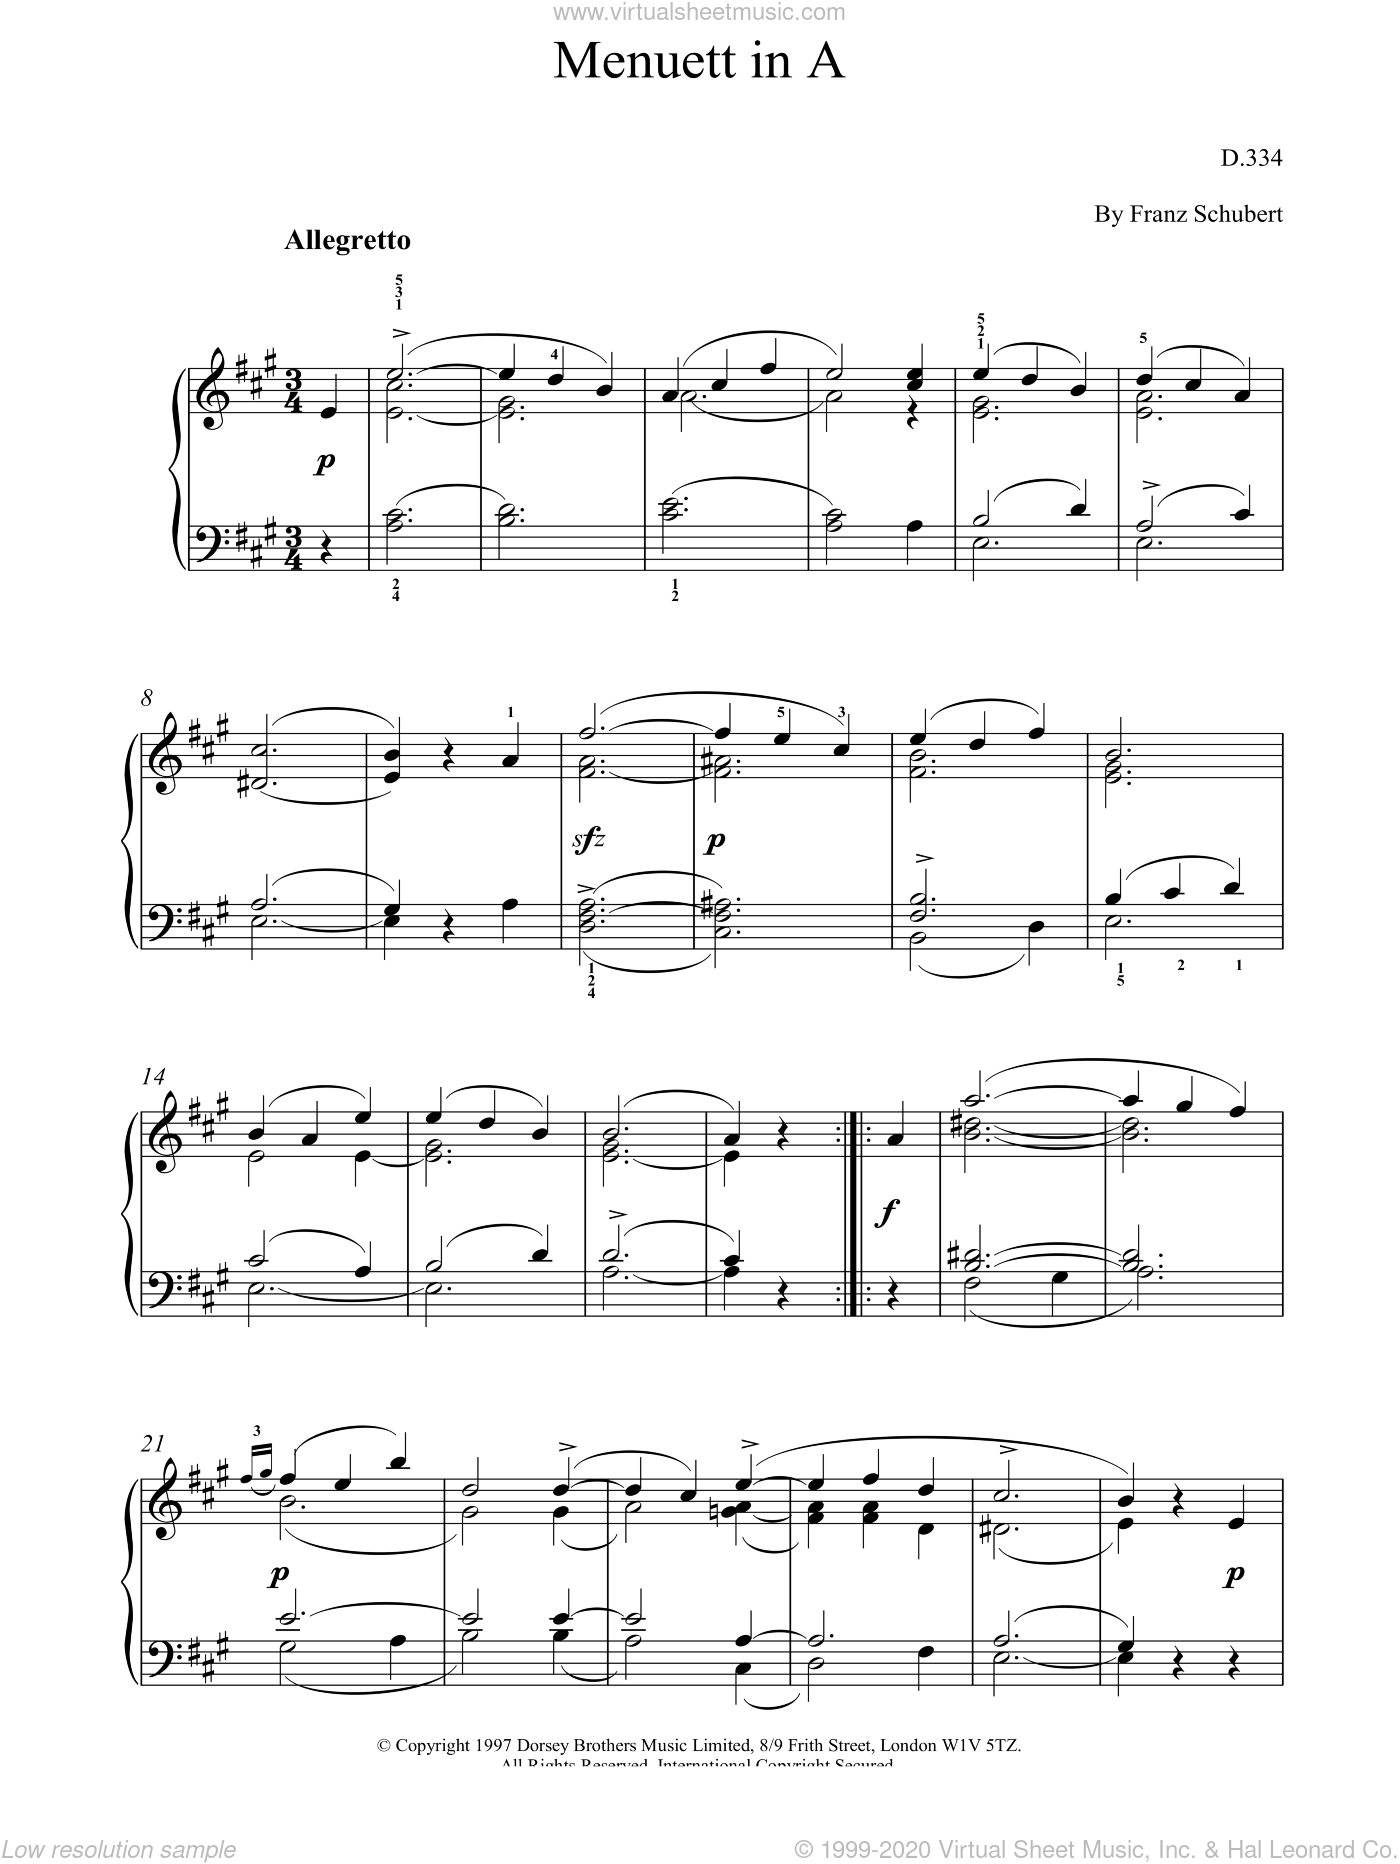 Menuett In A sheet music for piano solo by Franz Schubert. Score Image Preview.